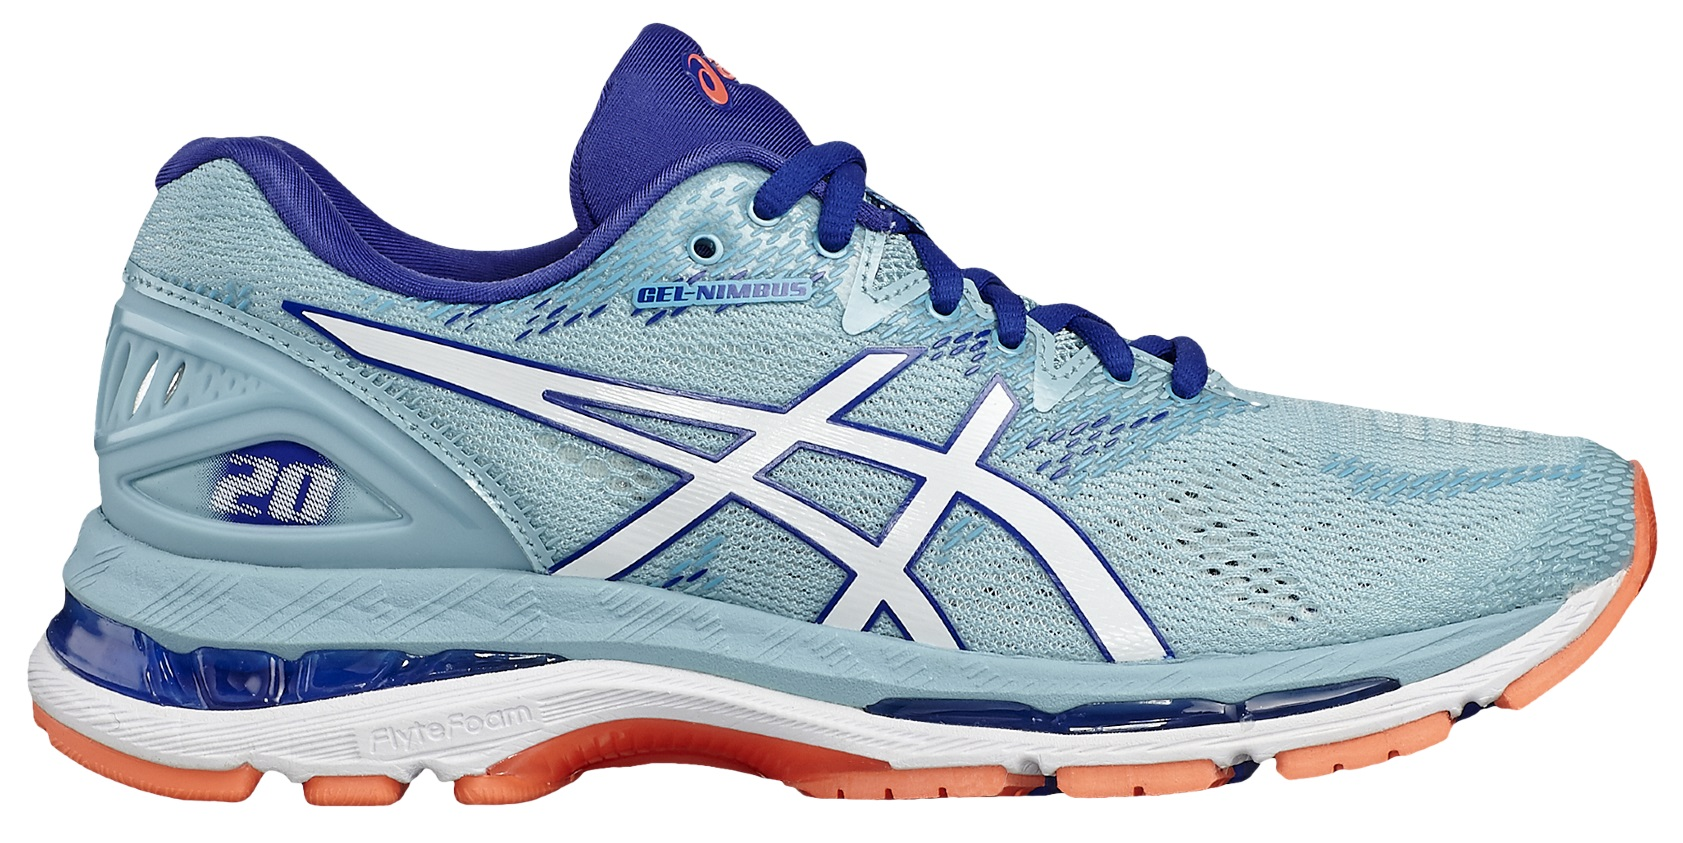 Asics GEL-NIMBUS 20 W - Porcelain Blue / White / Asics Blue